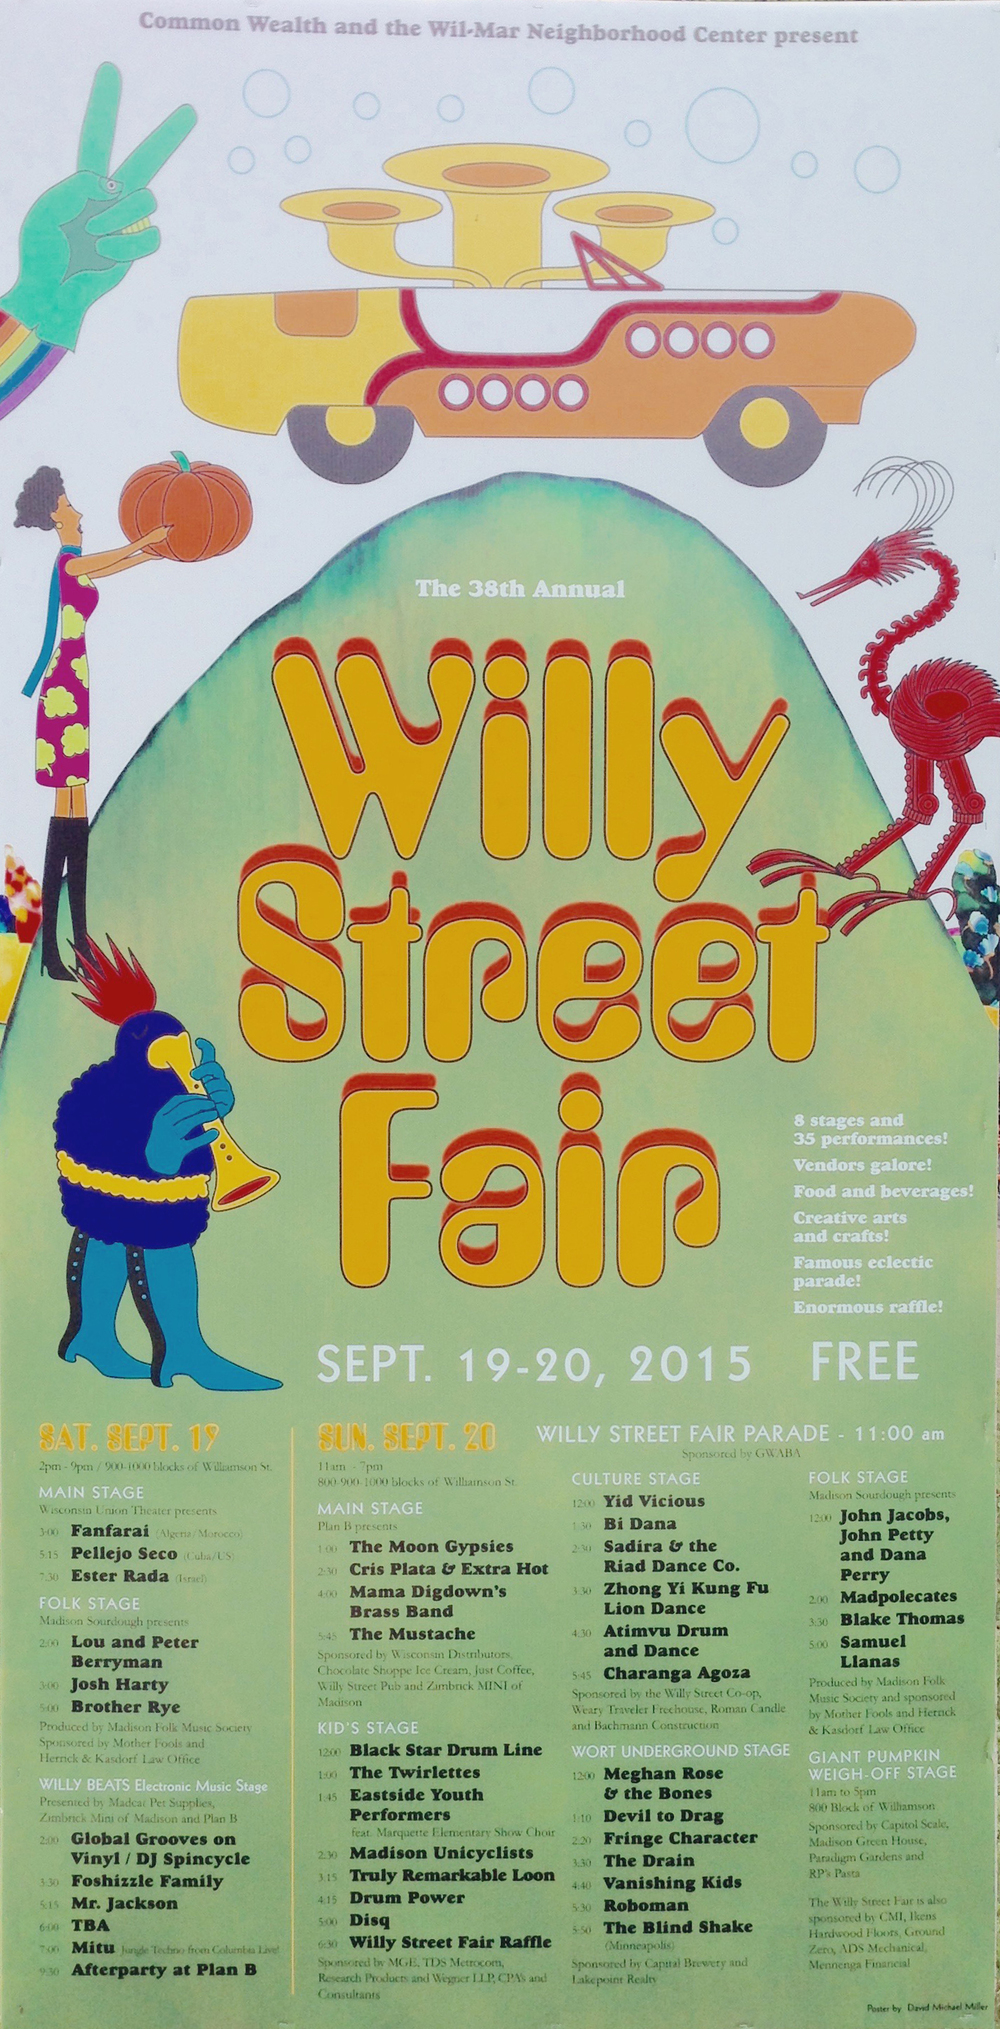 Fringe Character @ Willy Street Fair 2015